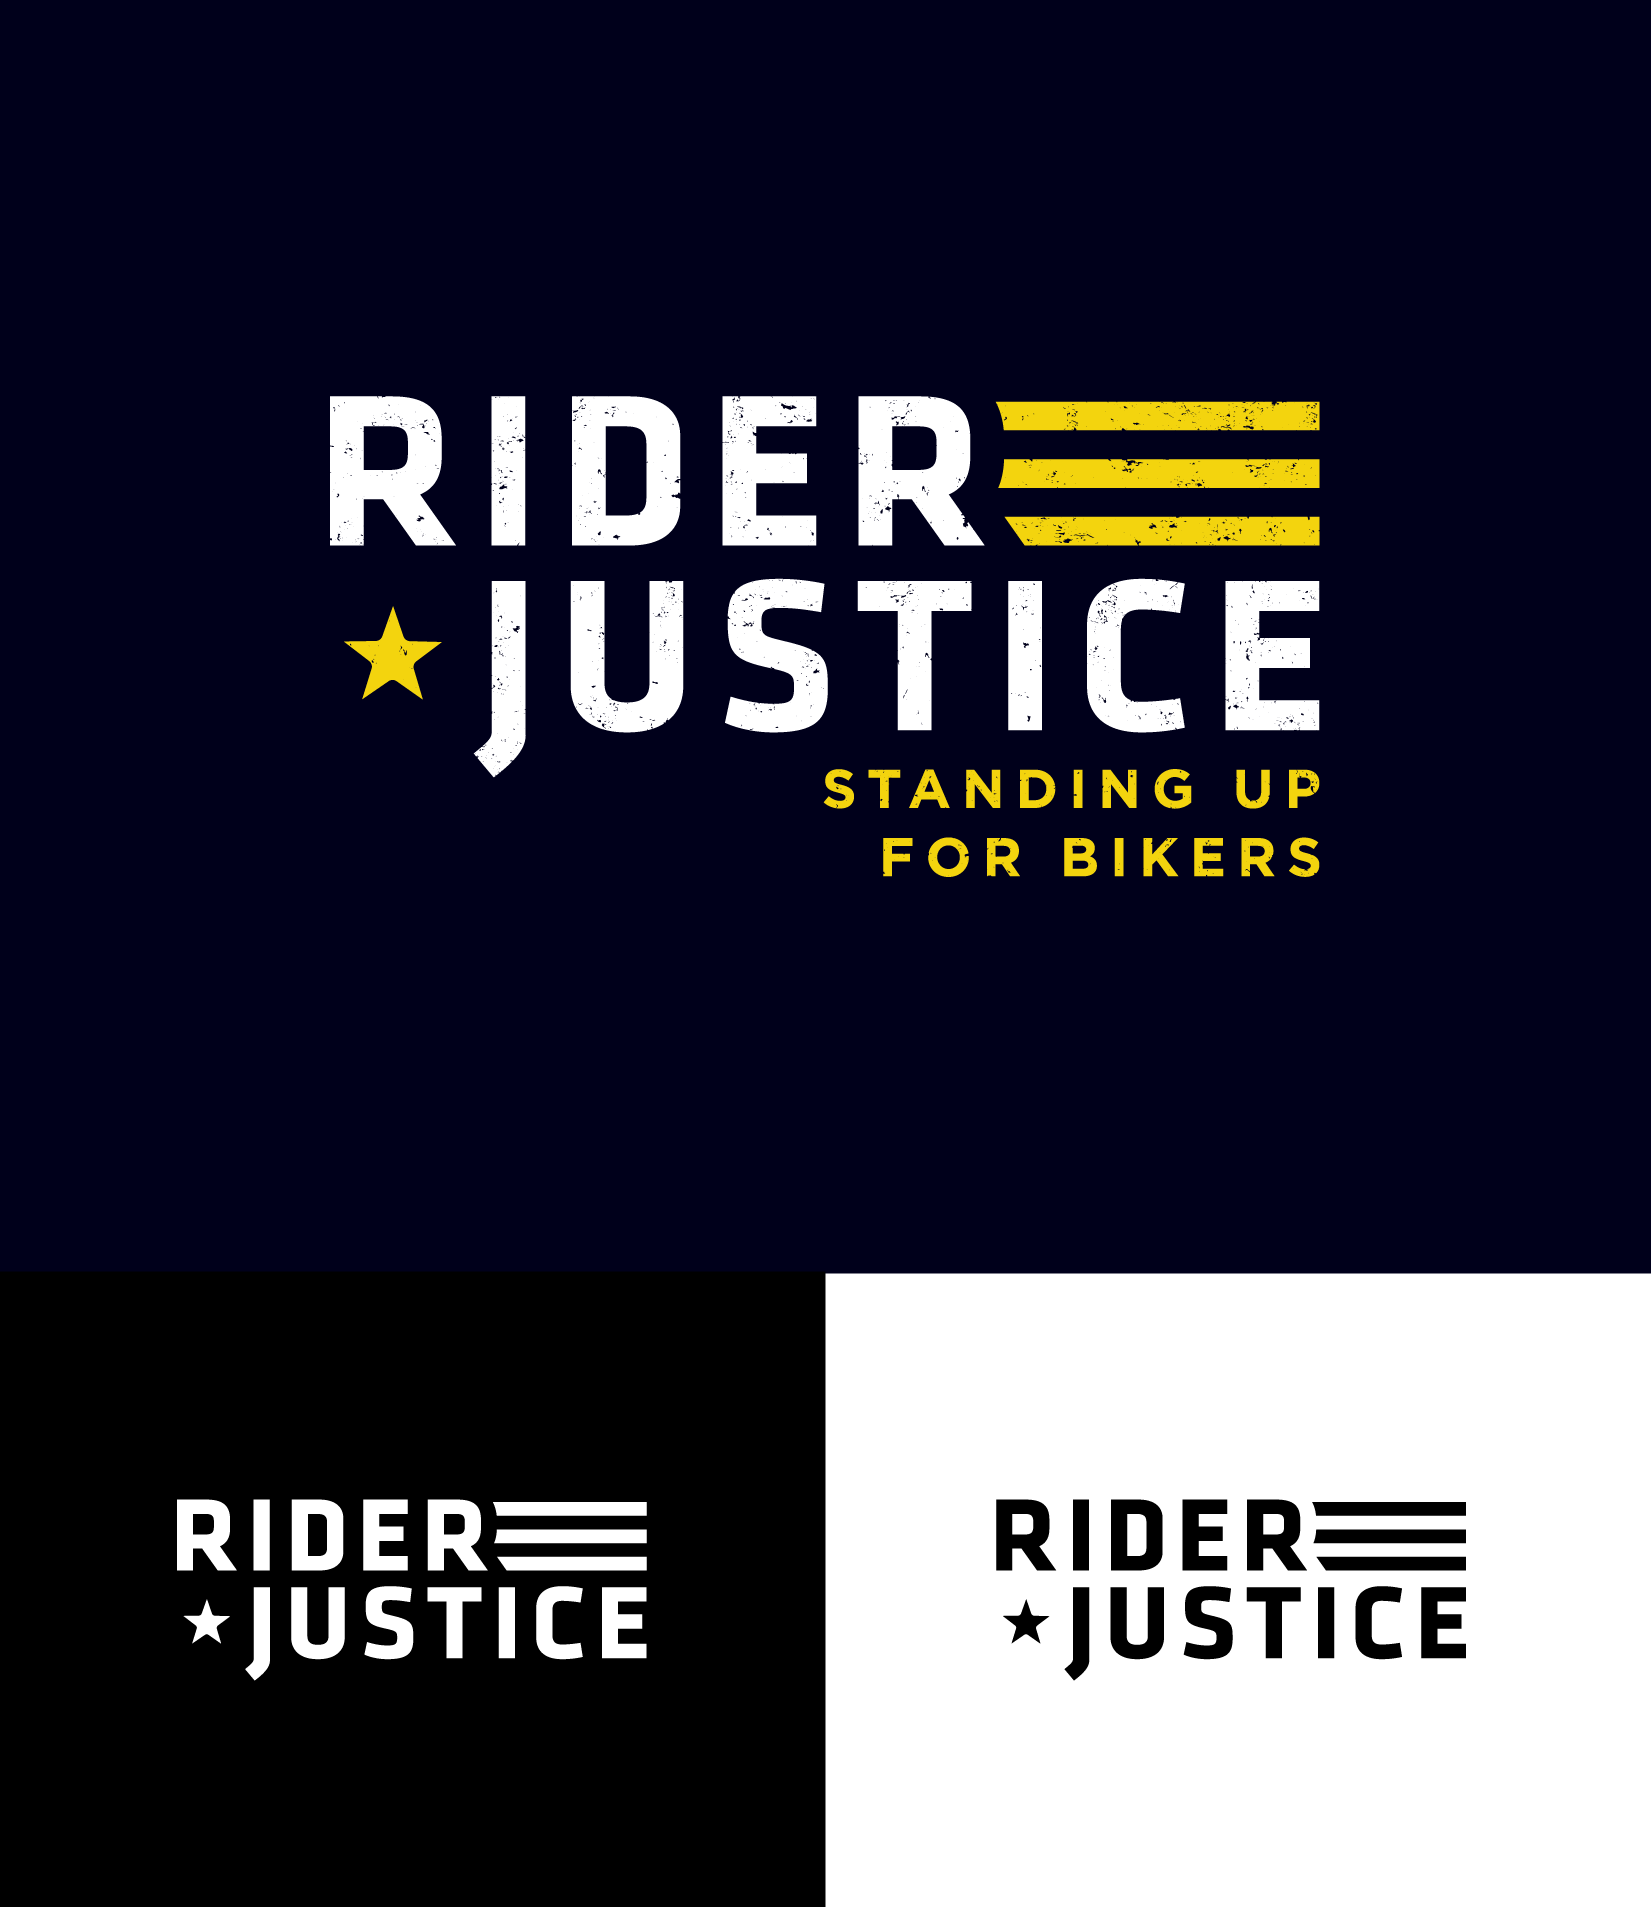 Rider Justice    is a resource for motorcycle riders in Colorado that focuses on safety, community and philanthropy.